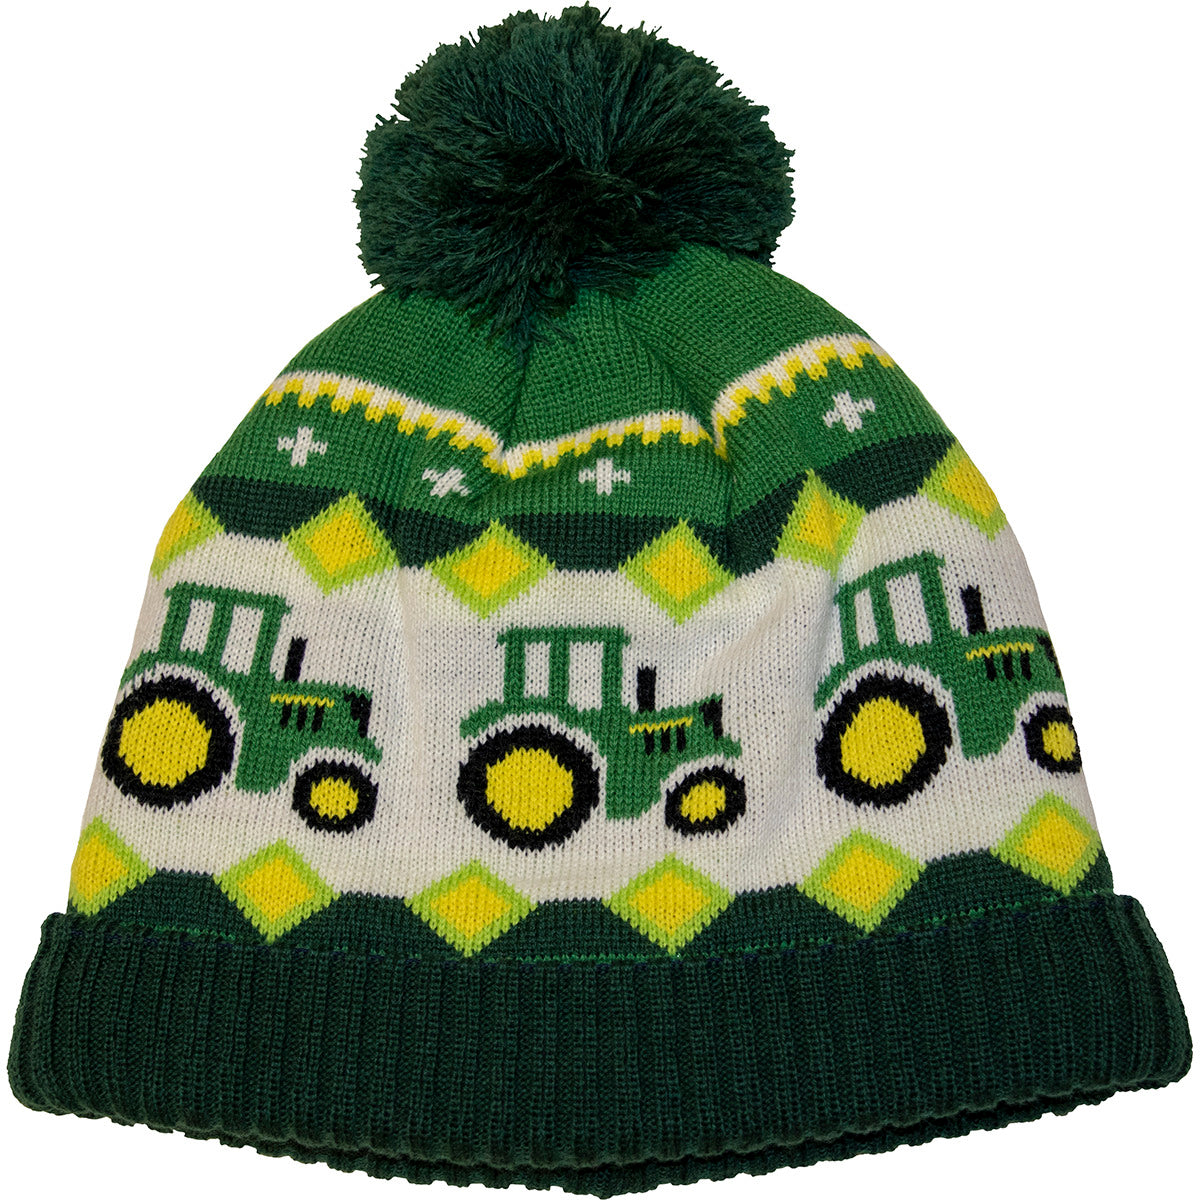 John Deere Boys Toddler Knit Beanie (Green) - LP70706